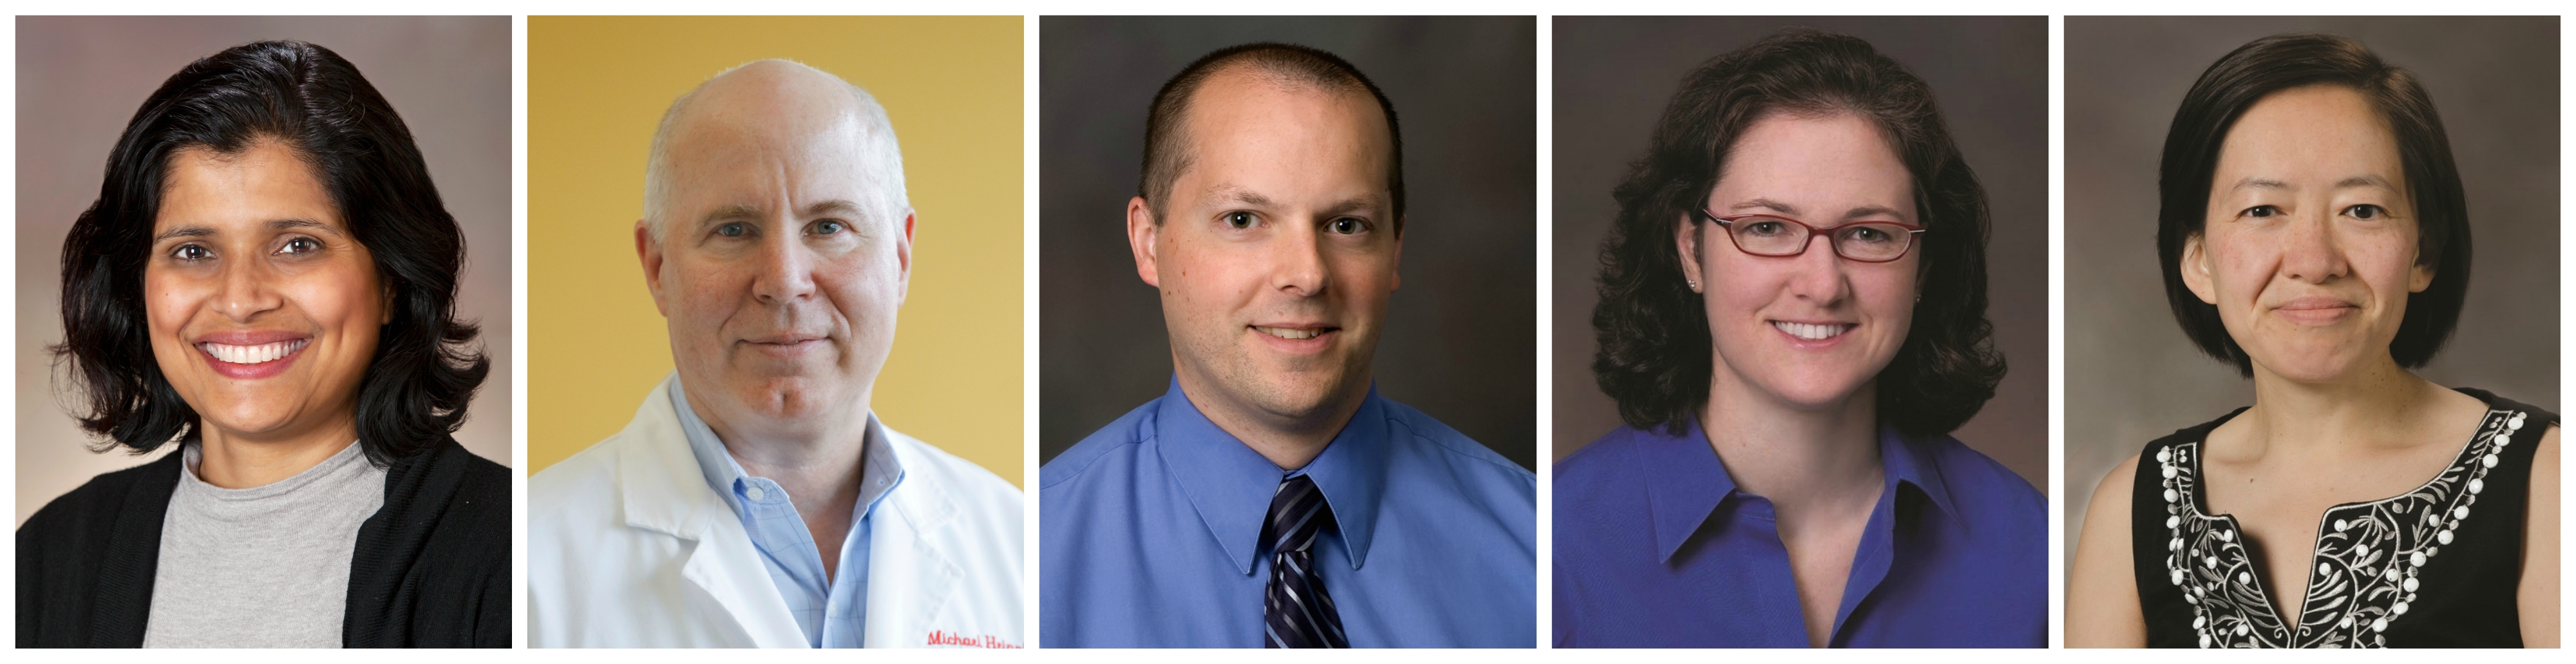 Portraits of the five clinical research scholars